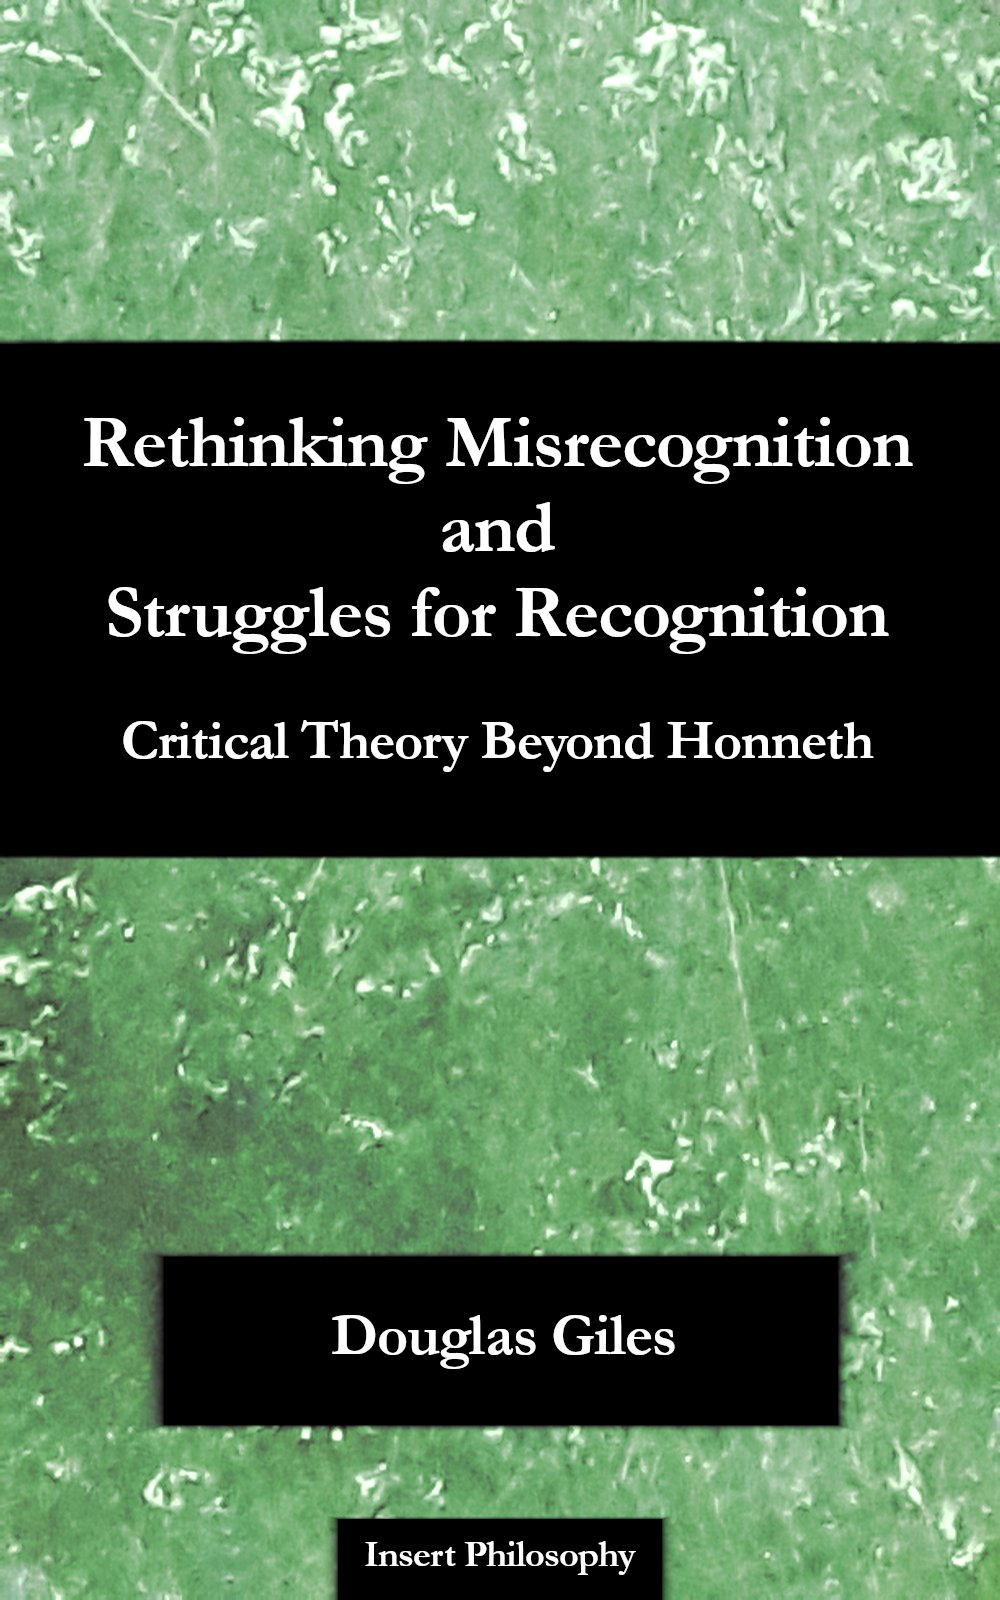 New Book: Rethinking Misrecognition and Struggles for Recognition